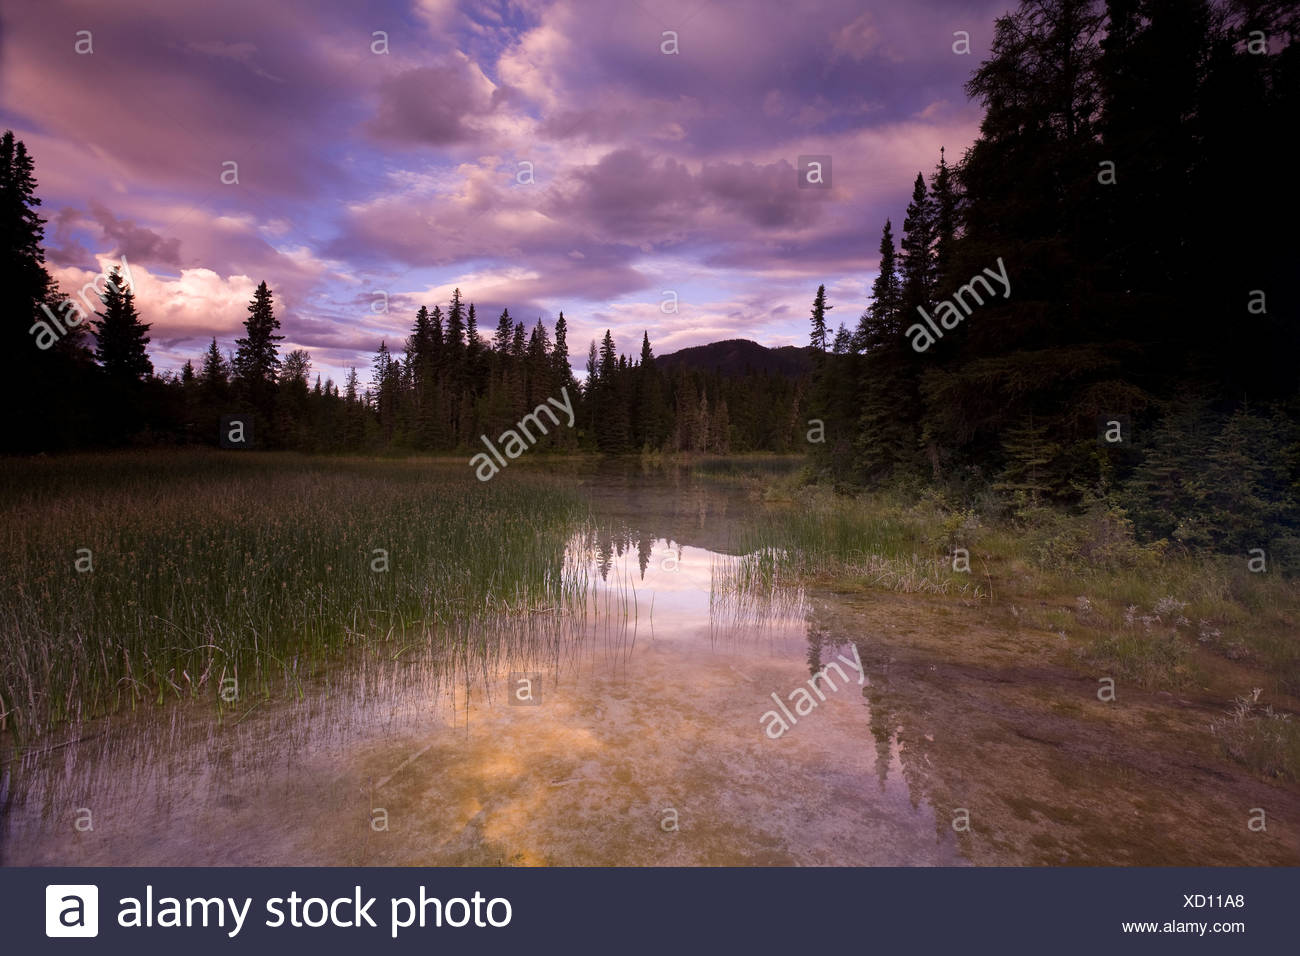 Warm water swamp and boreal forest near the hot springs, Liard River Hot Springs Provincial Park, British Columbia, Canada - Stock Image